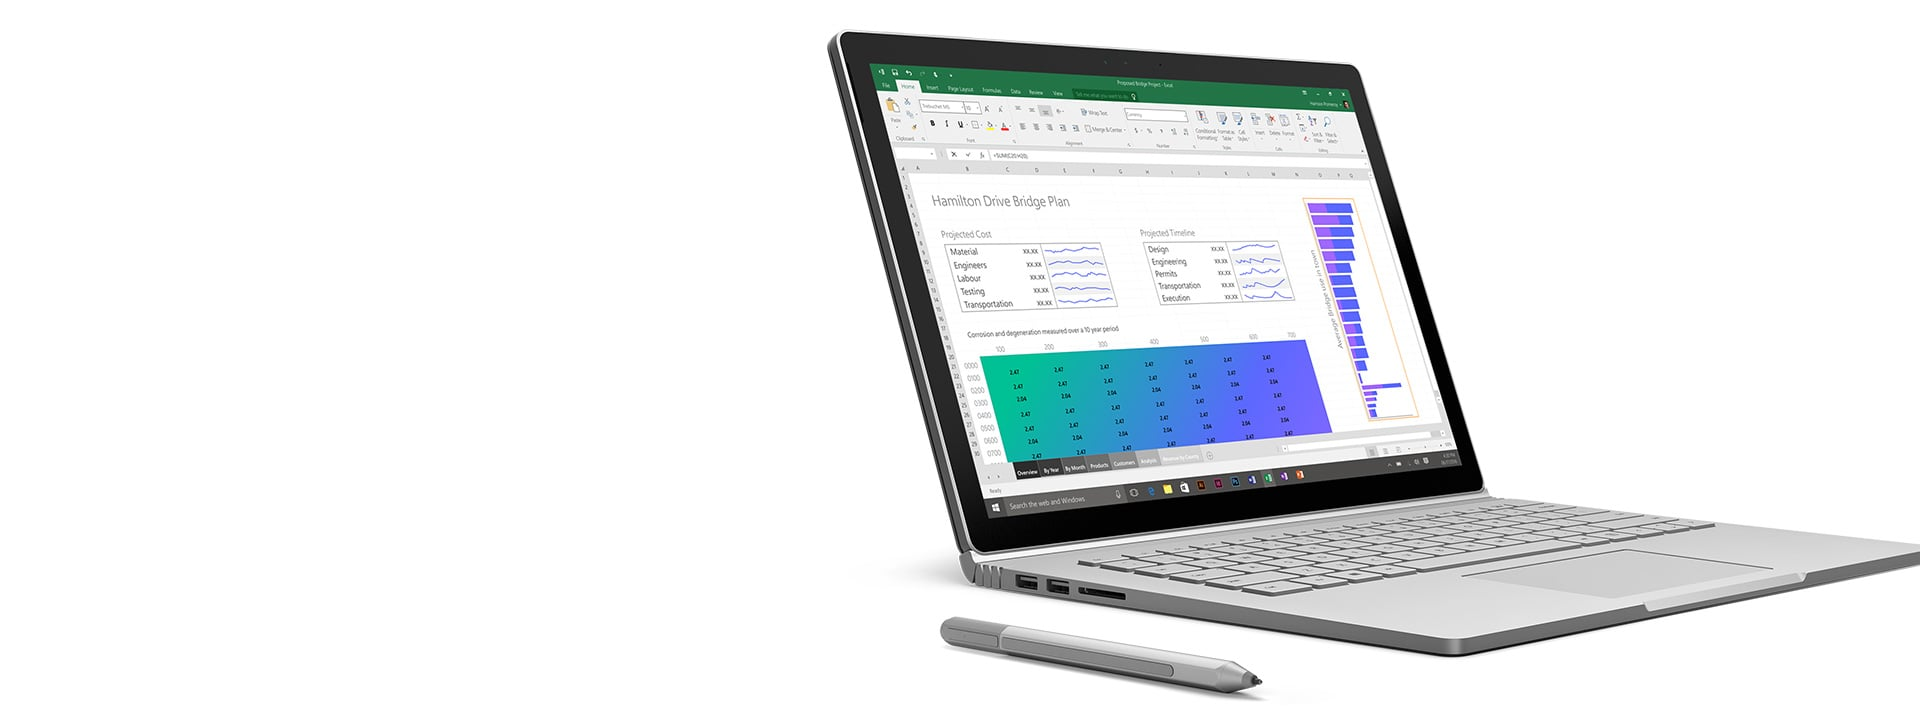 Surface Book with Excel open on the screen  and pen